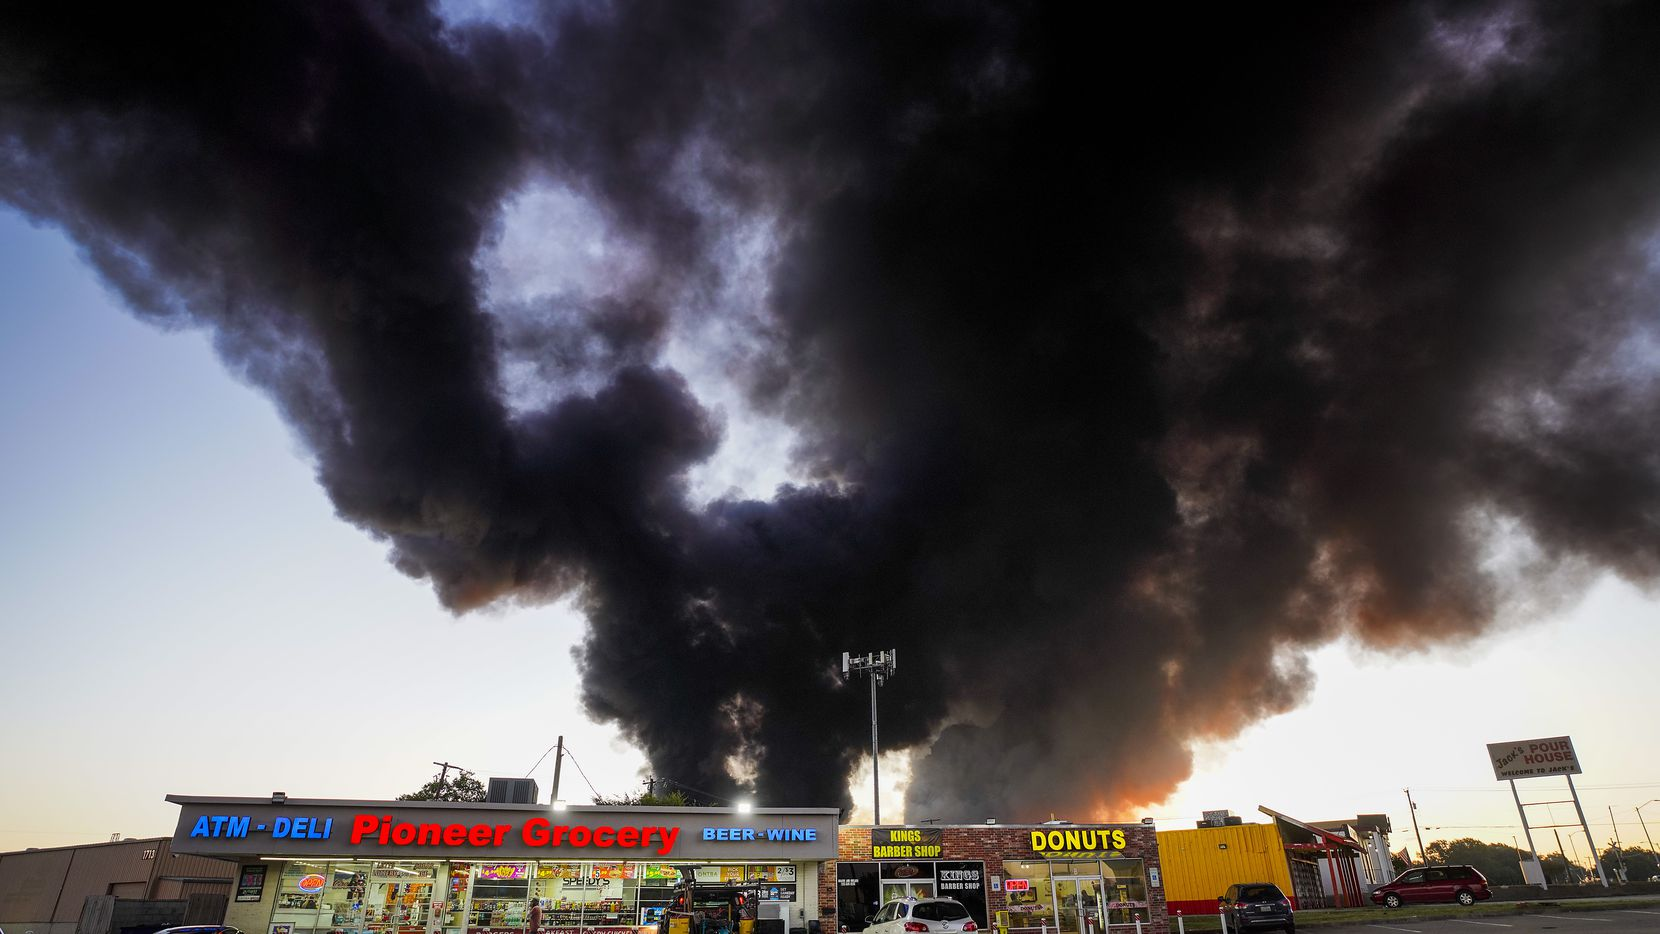 A plume of smoke rises over businesses at the corner of Great Southwest Parkway and Marshall Drive as fire crews battle a massive blaze in an industrial area of Grand Prairie just before sunrise on Wednesday, Aug. 19, 2020.